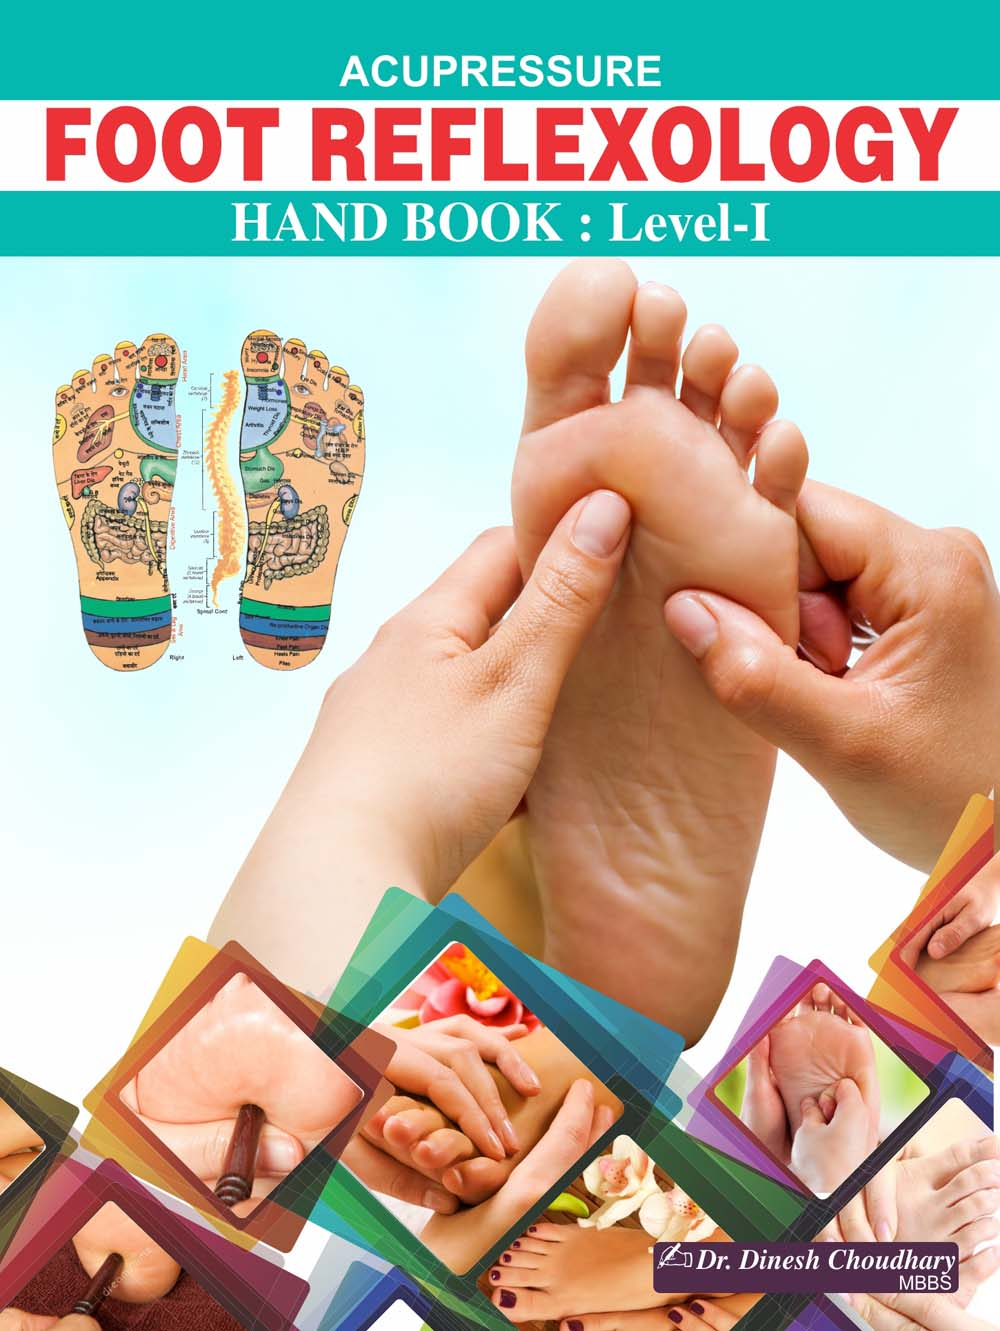 Acupressure Foot Reflexology - Dr. Dinesh